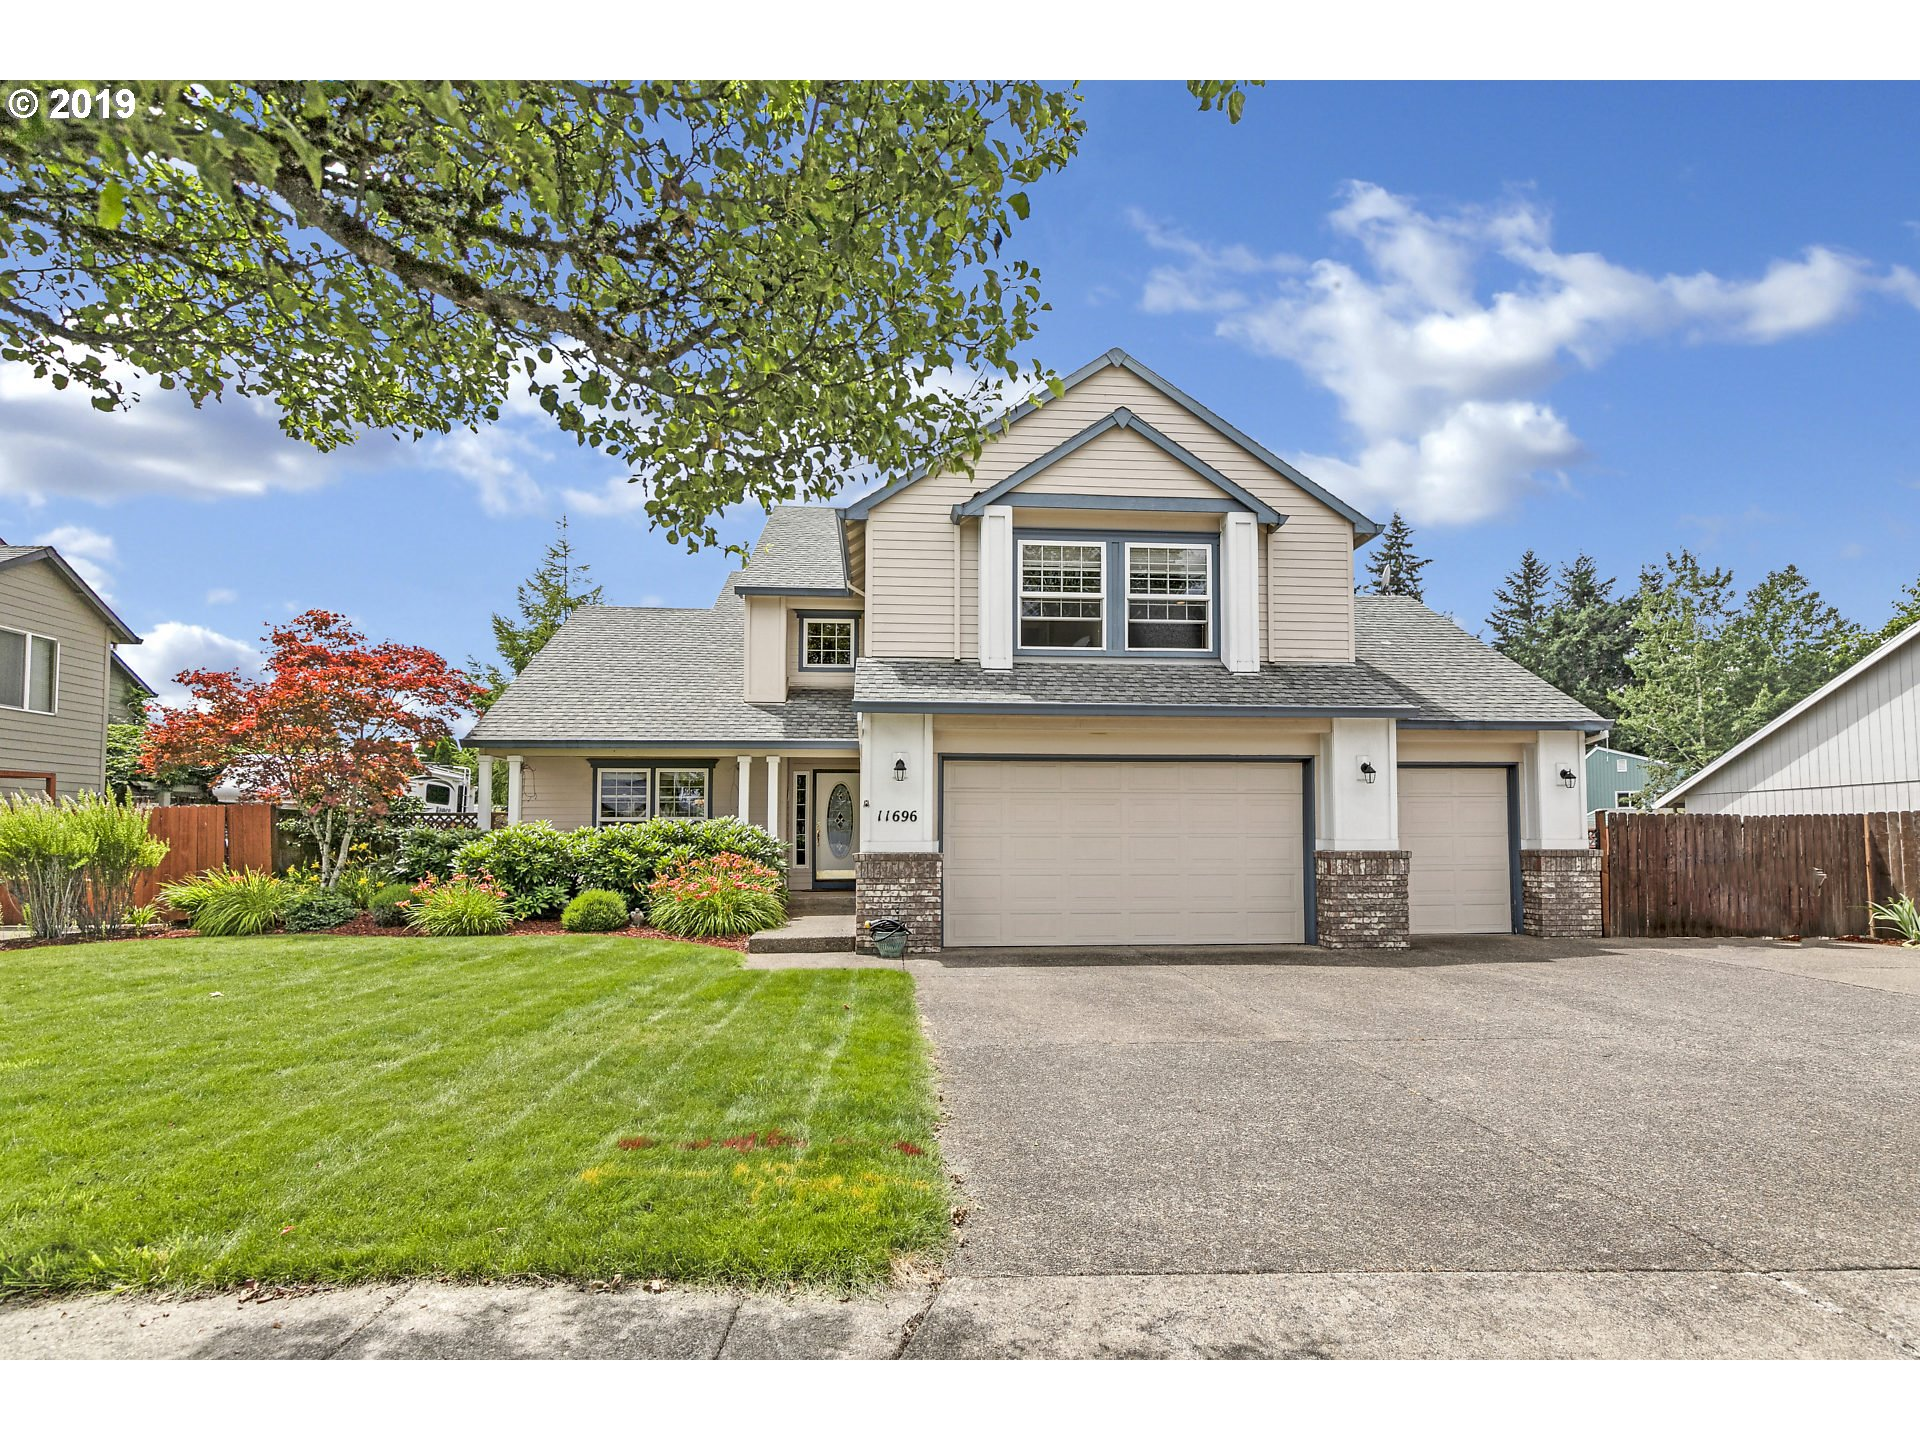 11696 SALMONBERRY DR, Oregon City OR 97045